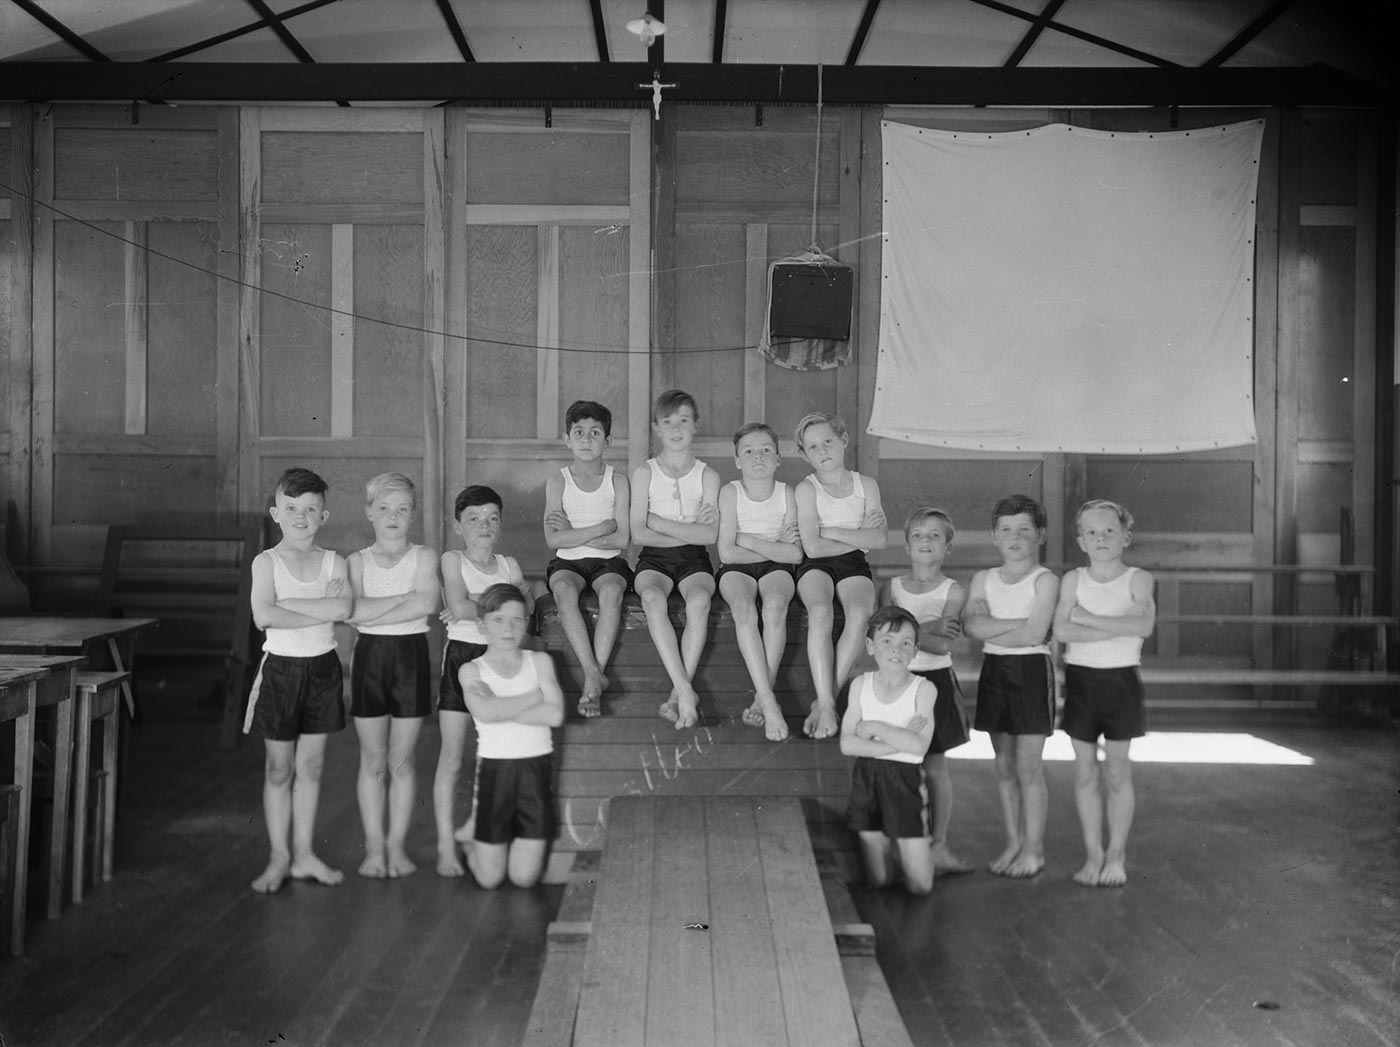 Black and white photograph showing 12 young boys, wearing dark shorts and white singlets. Four of the boys sit with crossed arms and ankles on a vaulting horse at the centre. Three other boys stand, cross-armed, either side and two kneel at the front. - click to view larger image